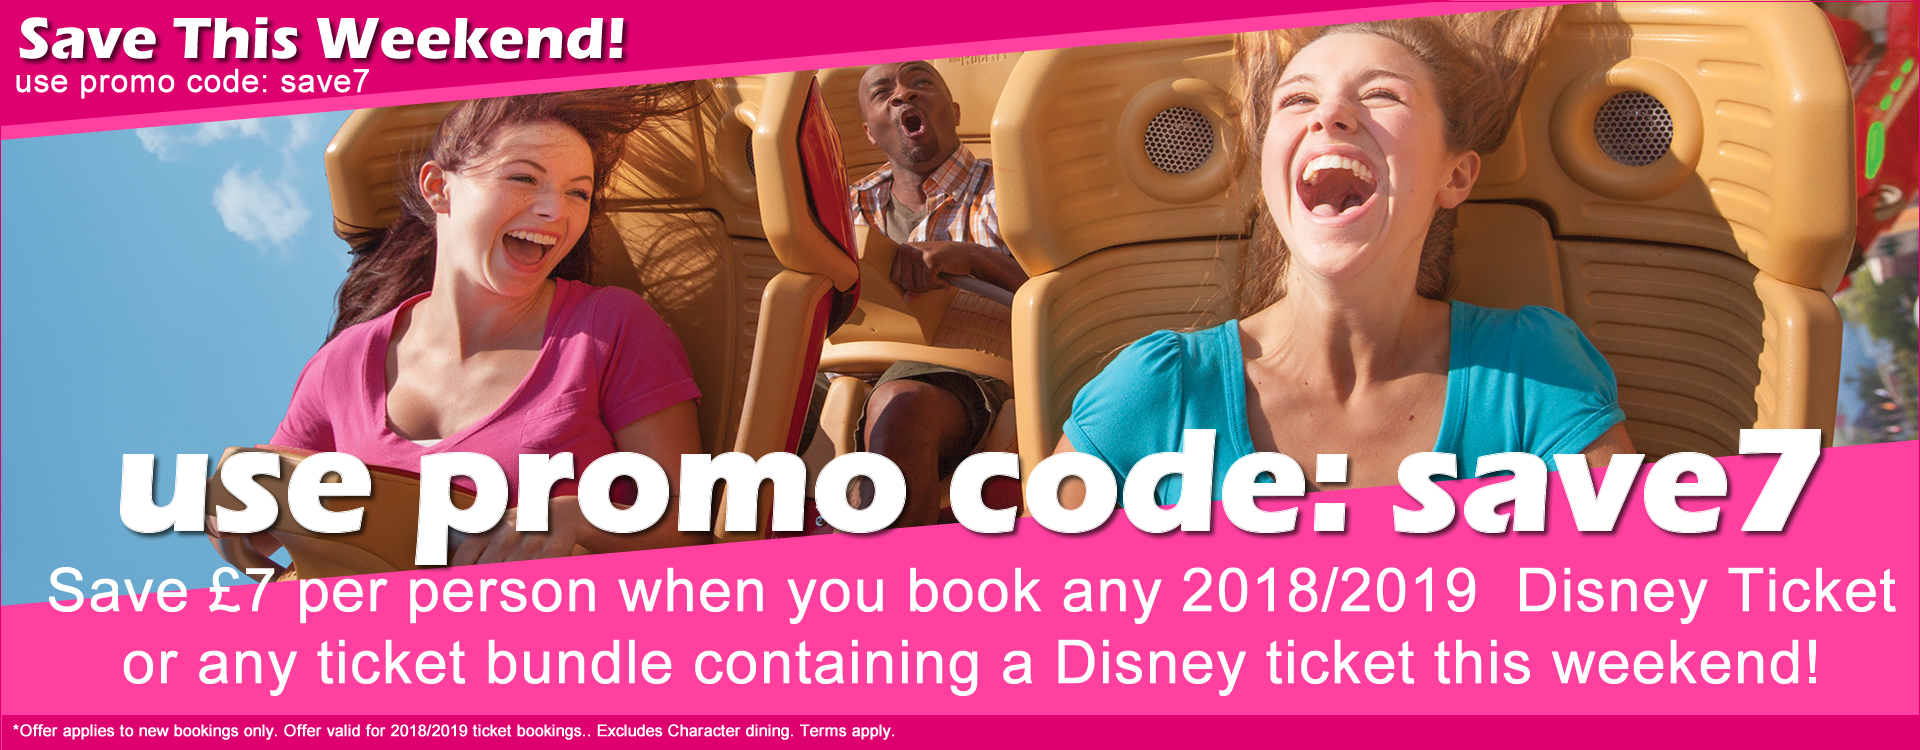 https://www.themeparktickets.co.uk/